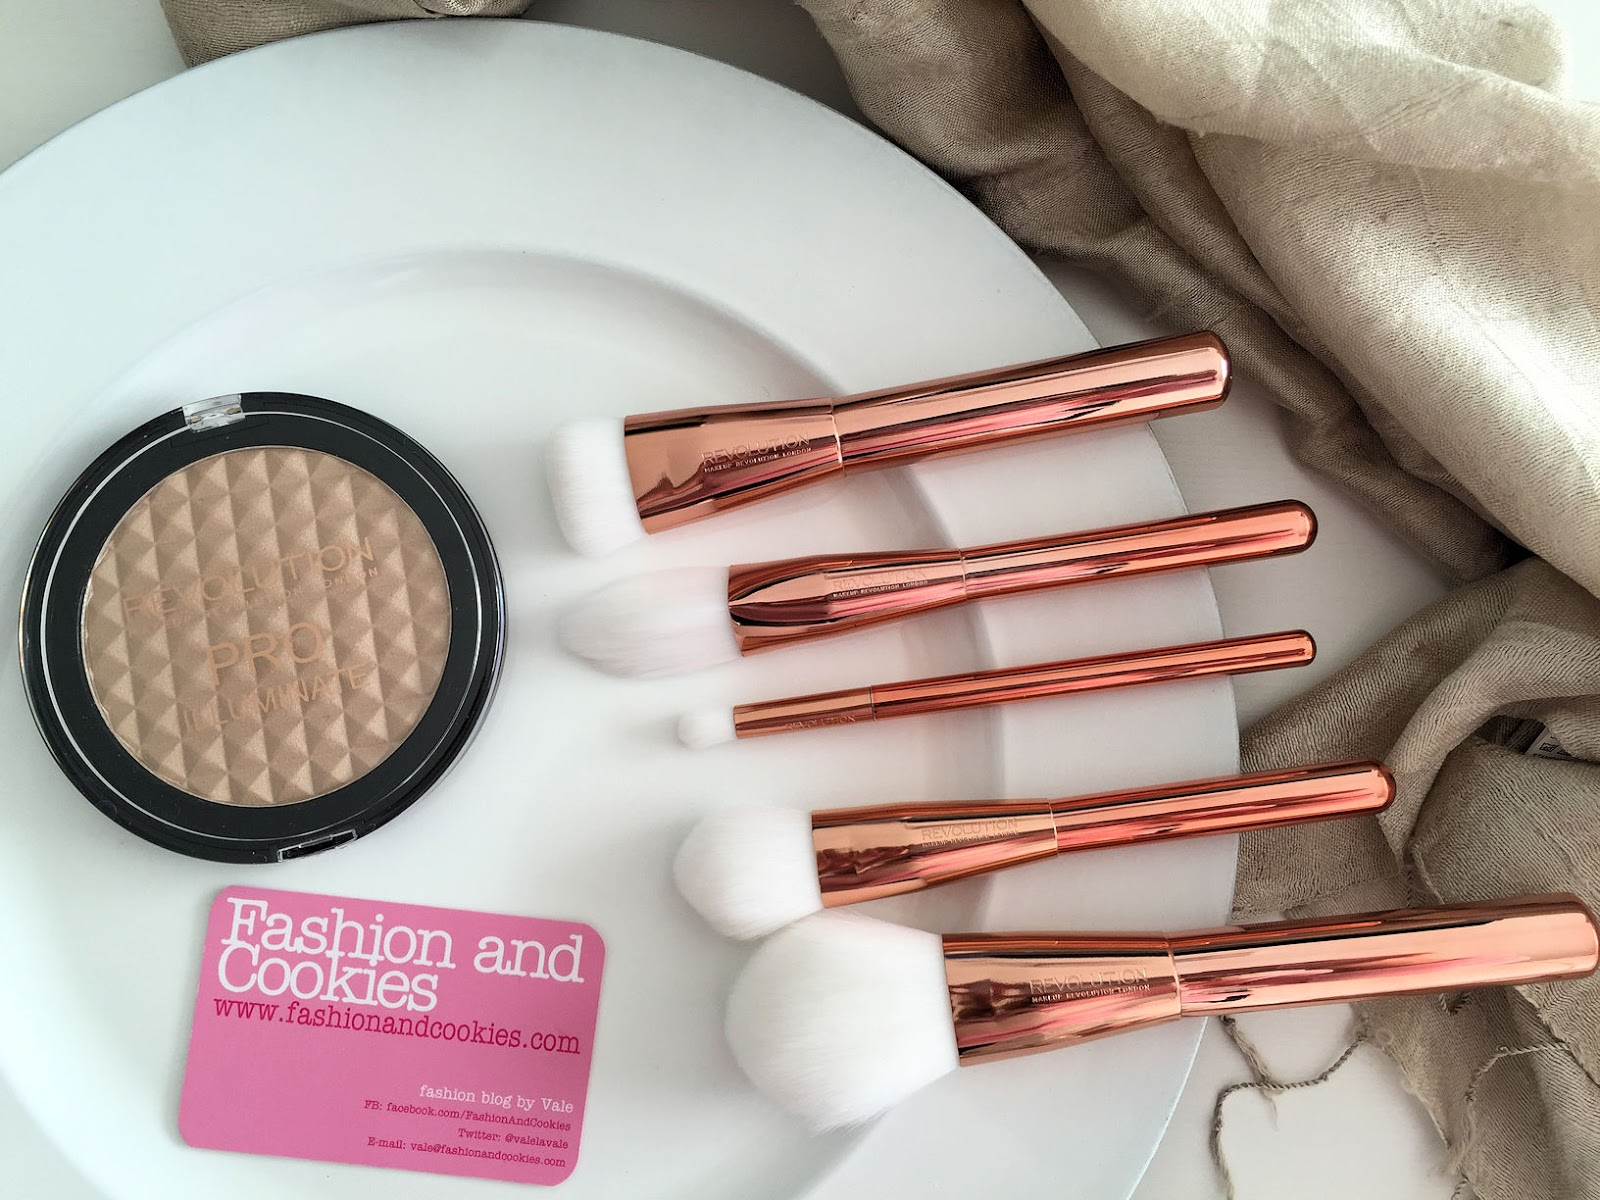 Makeup Revolution Ultra Metals Revolution makeup brushes review on Fashion and Cookies beauty blog, beauty blogger